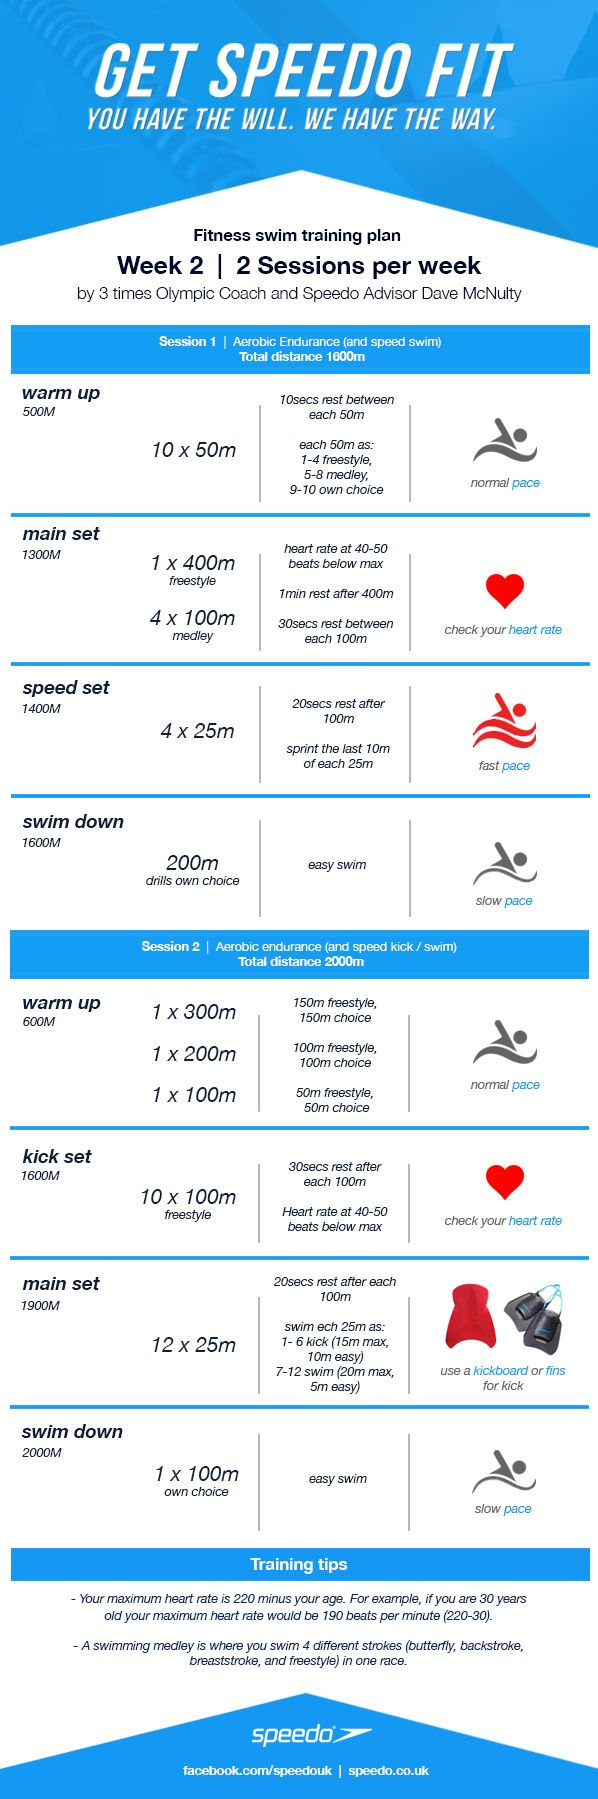 Dave McNulty Swim Fitness Training Plan - Week 2 | Speedo